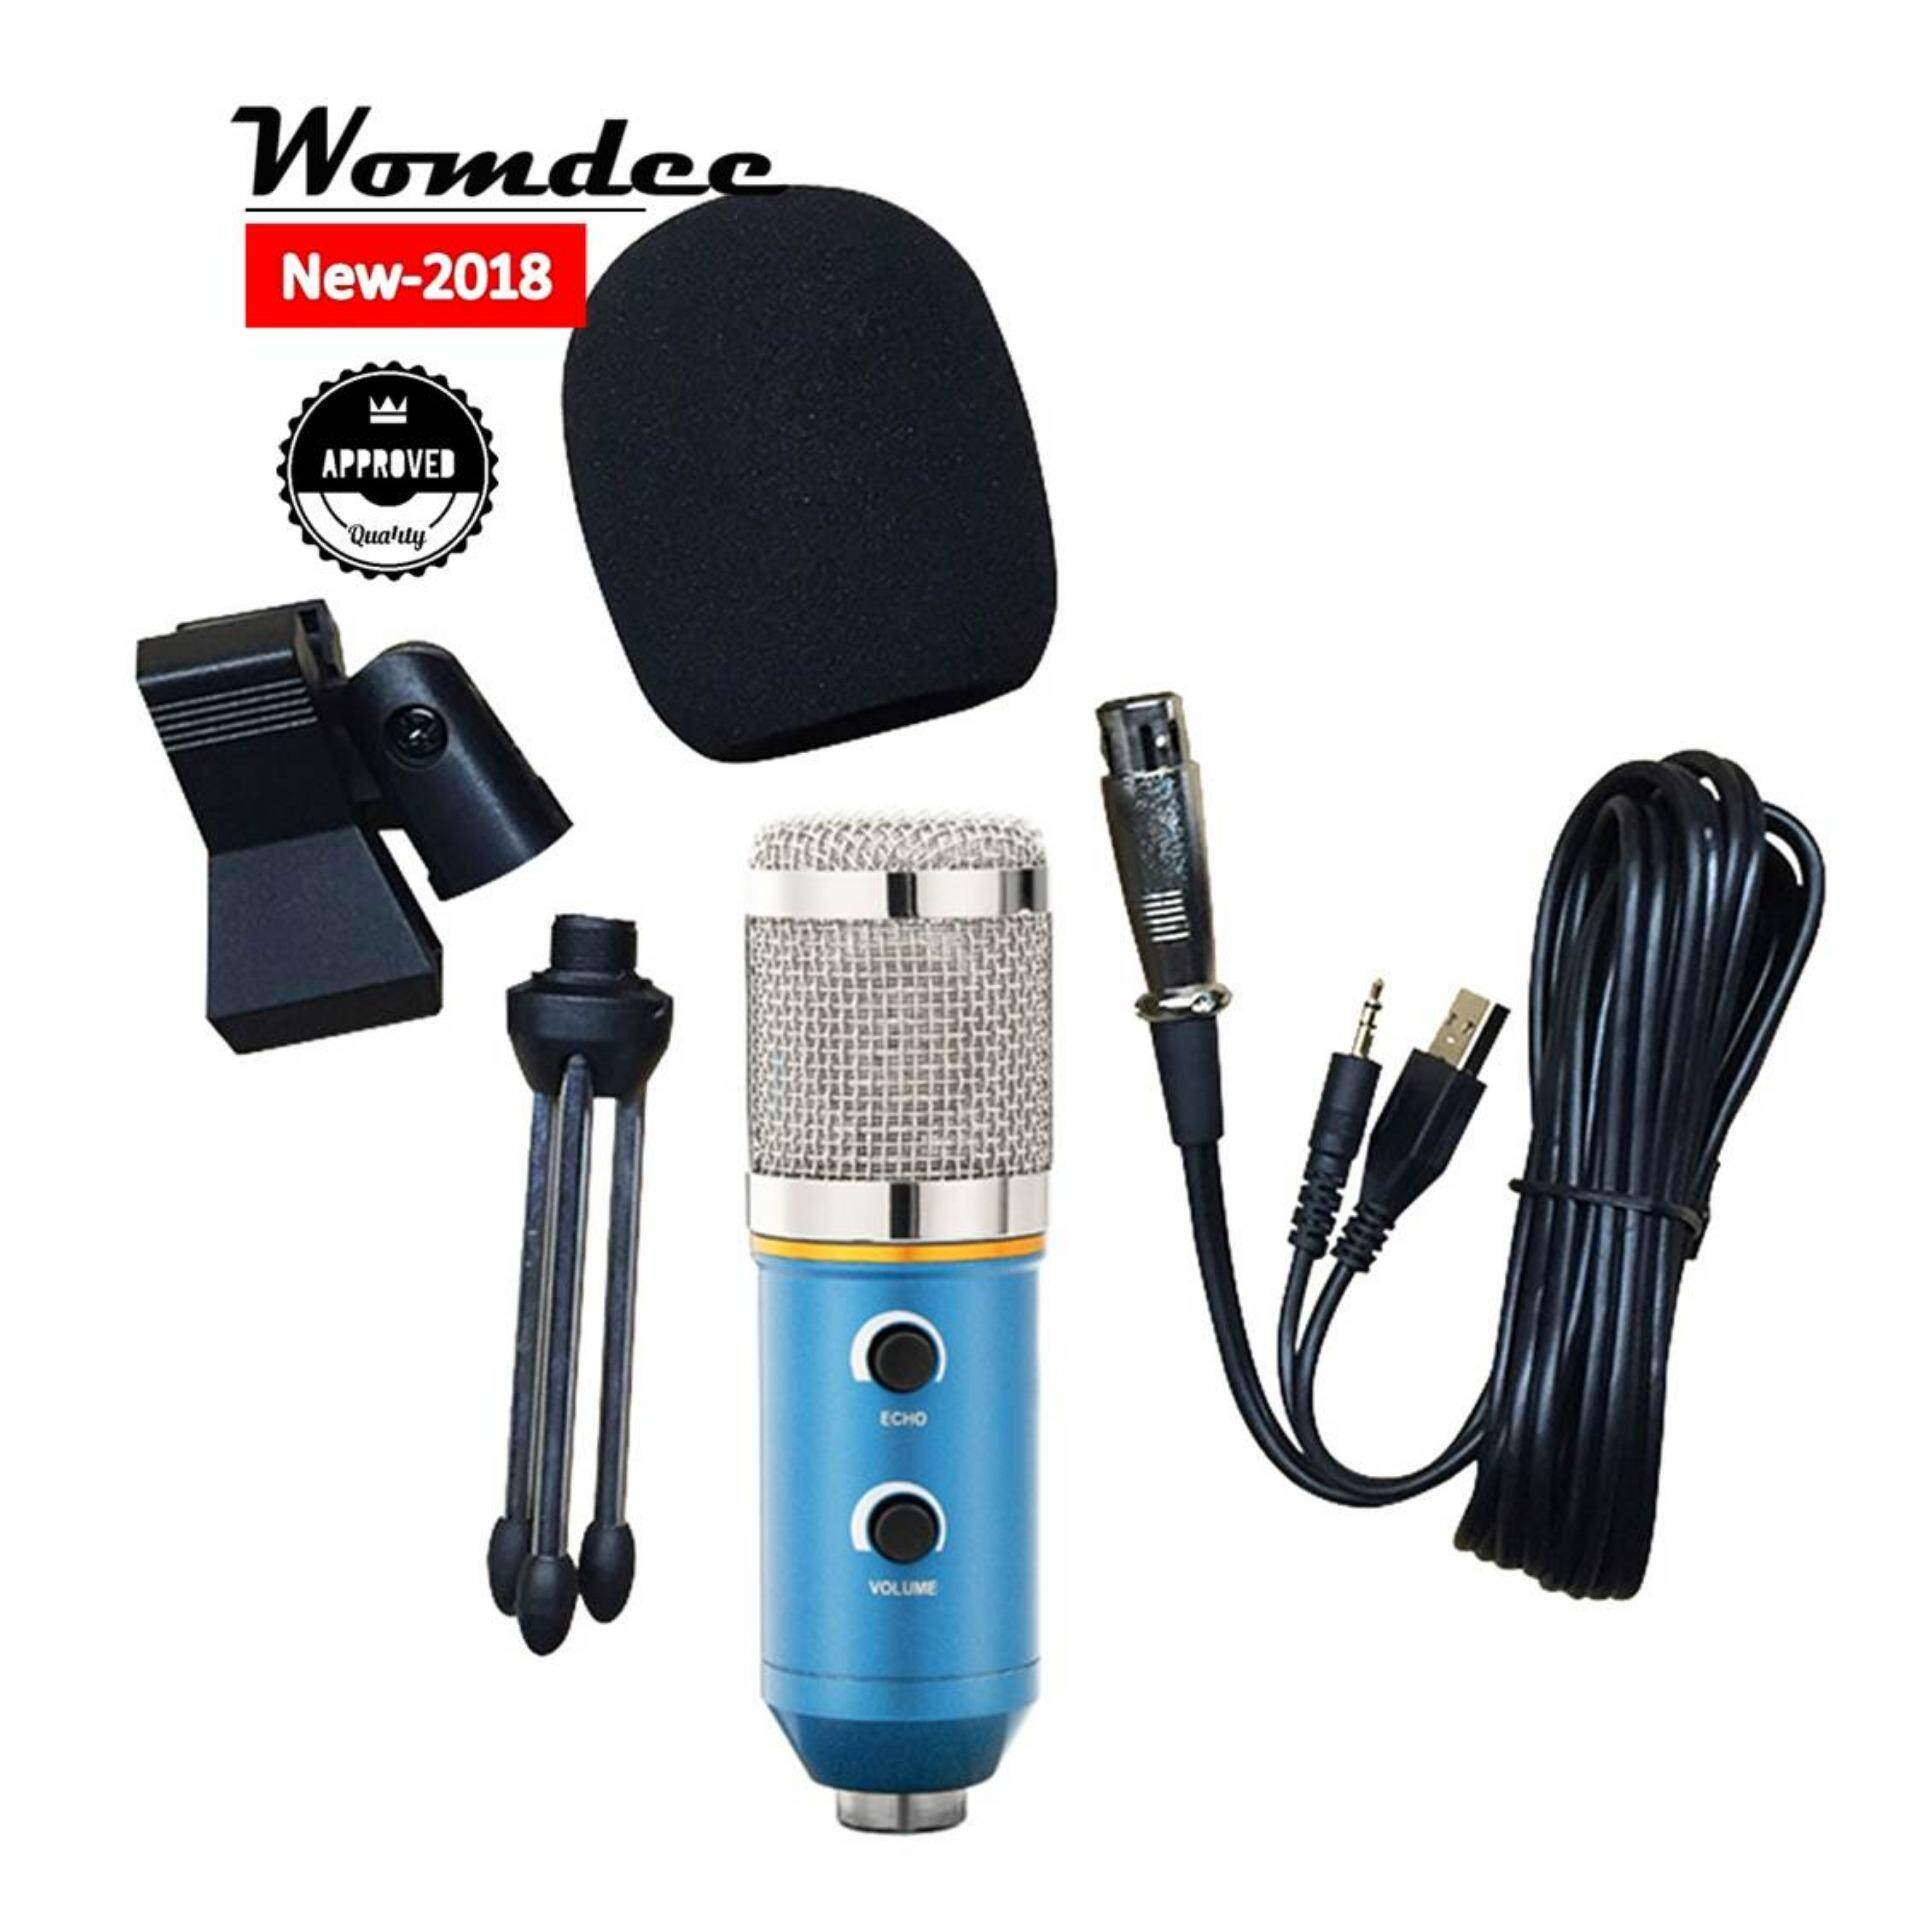 Buy Microphone Accessories Electronics Lazada Mic Mini 35mm Portable With Clip For Smartphone Laptop Tablet Pc Womdee Condenser Metal Vocal Compatible Computer Perfect